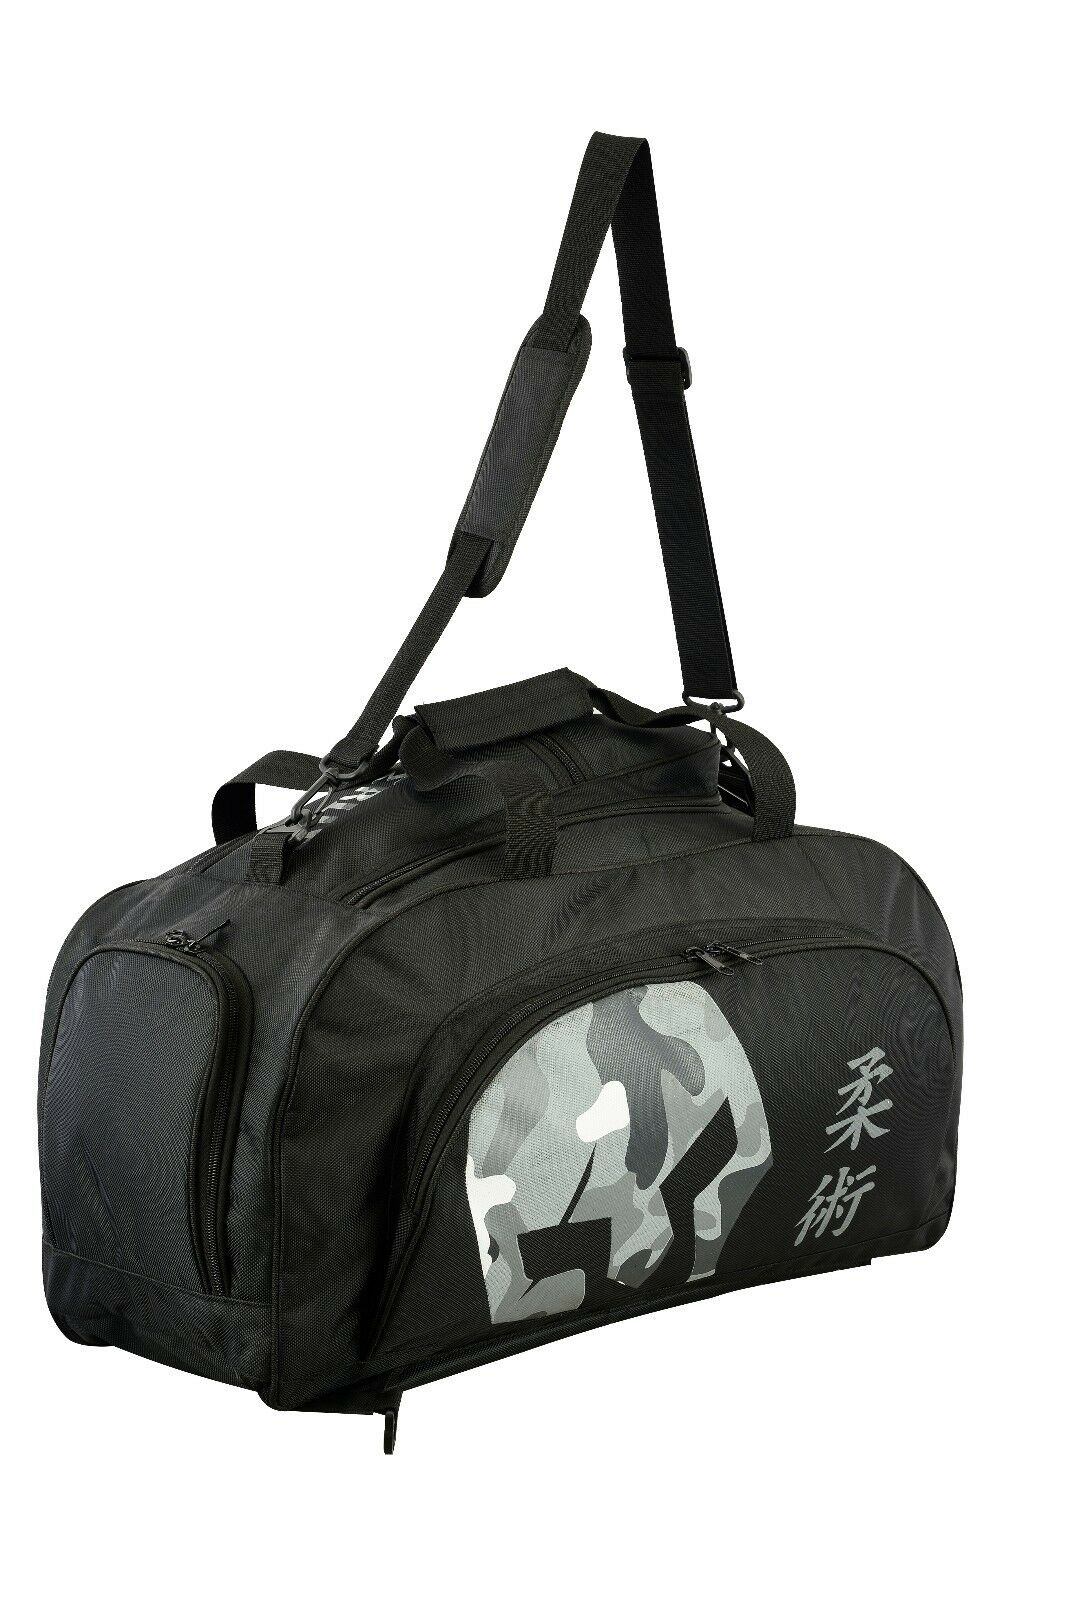 Duffel Bags  Men's Travel Sports Home Gym Carry Fitness  we supply the best